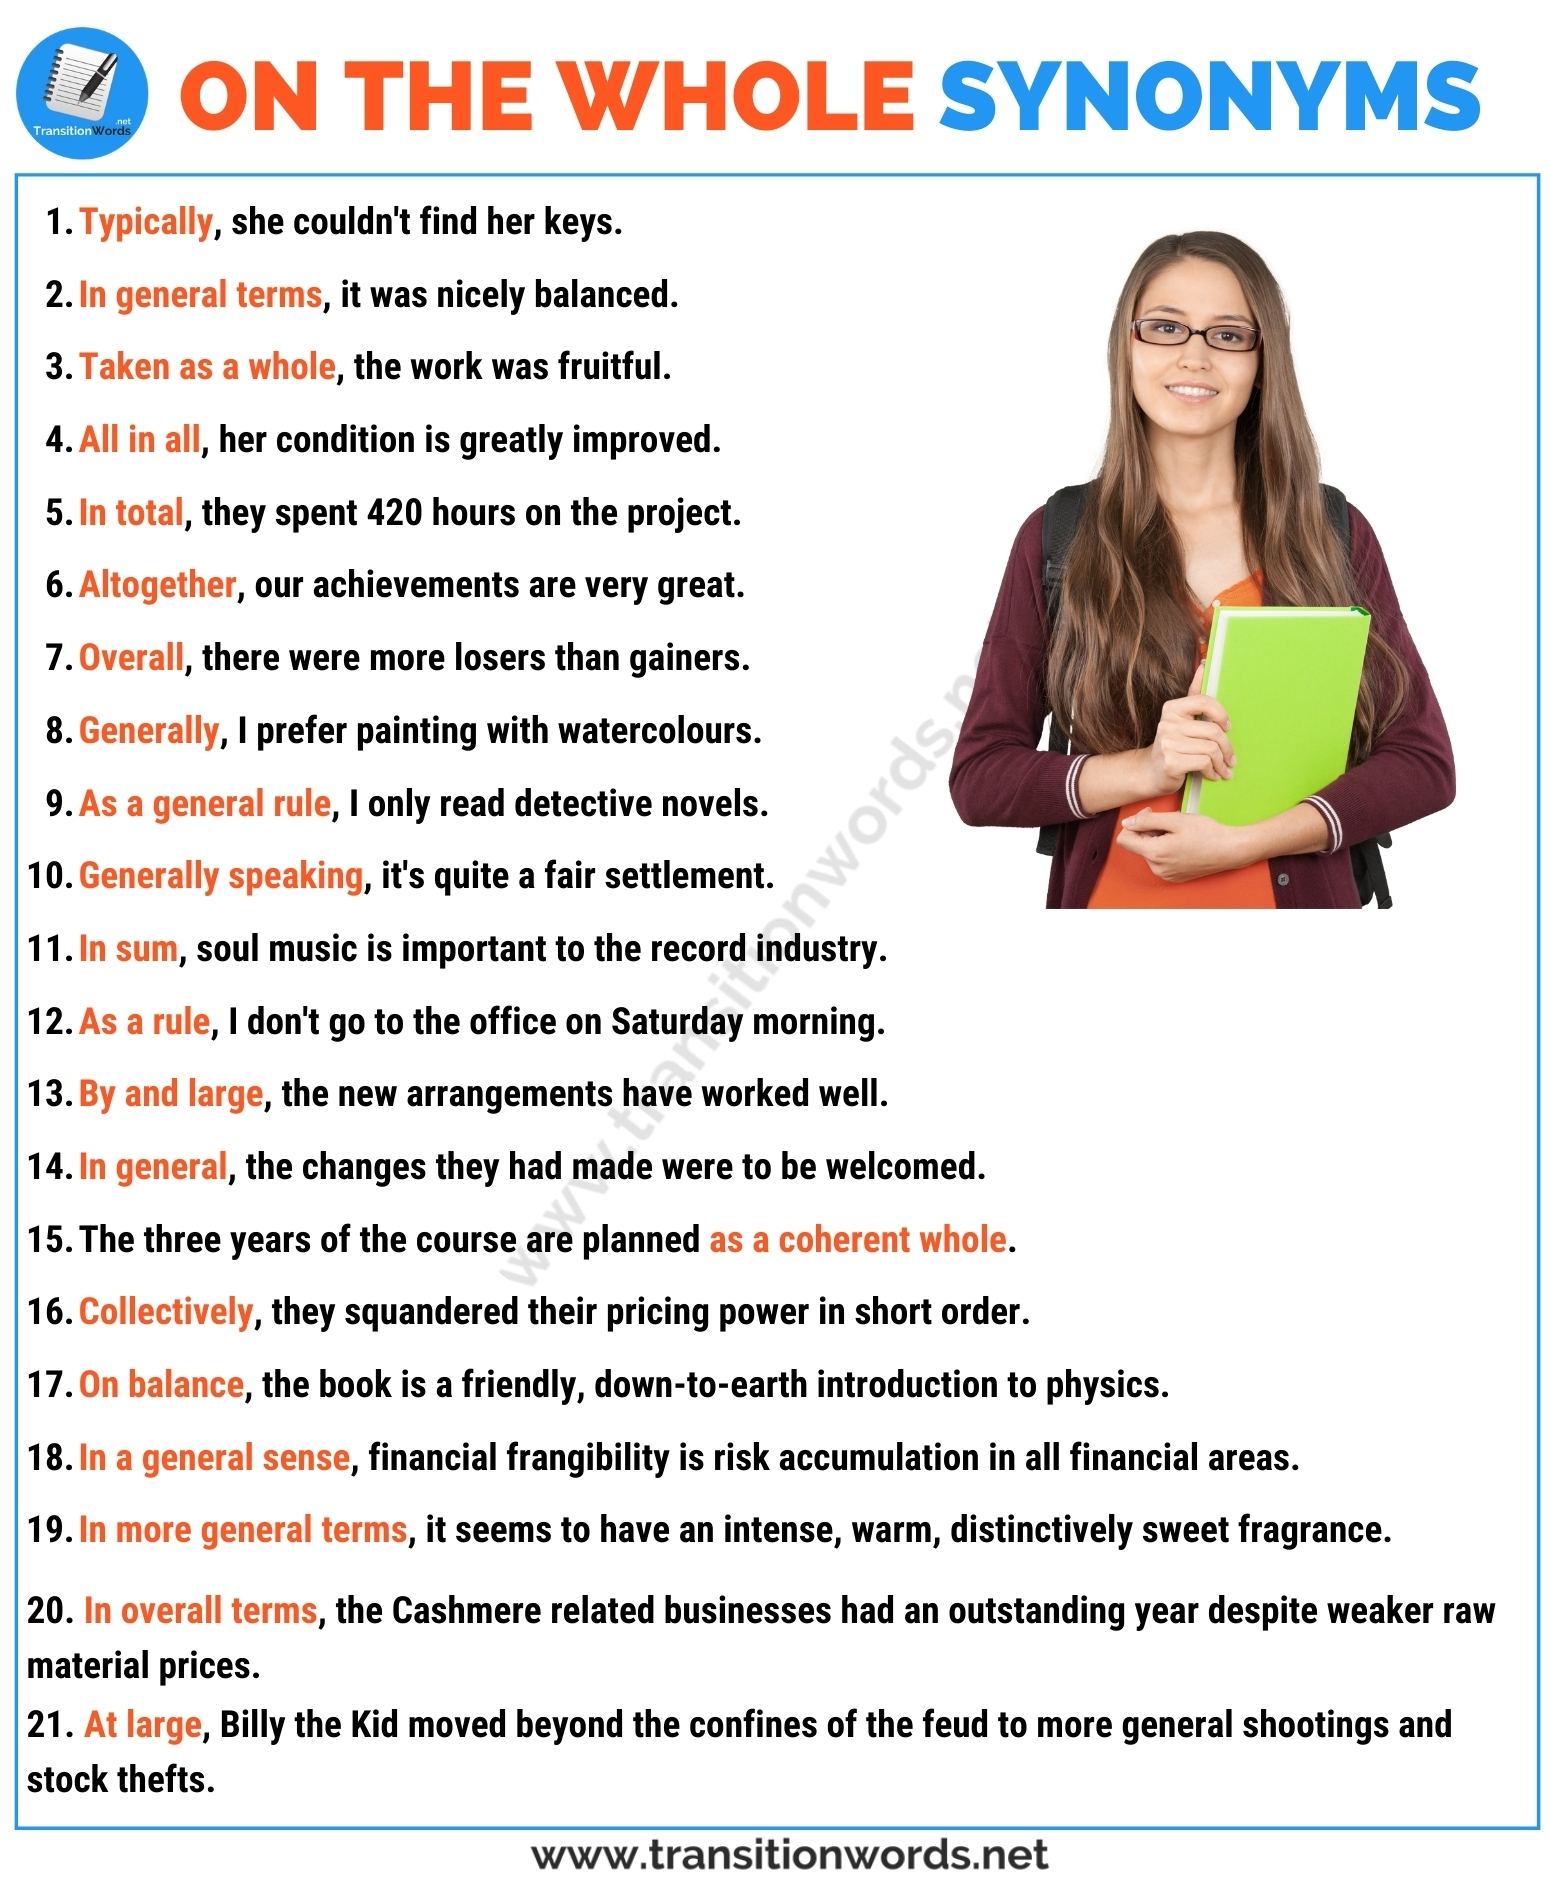 On the whole Synonym: List of 20+ Synonyms for On the Whole with Useful Examples